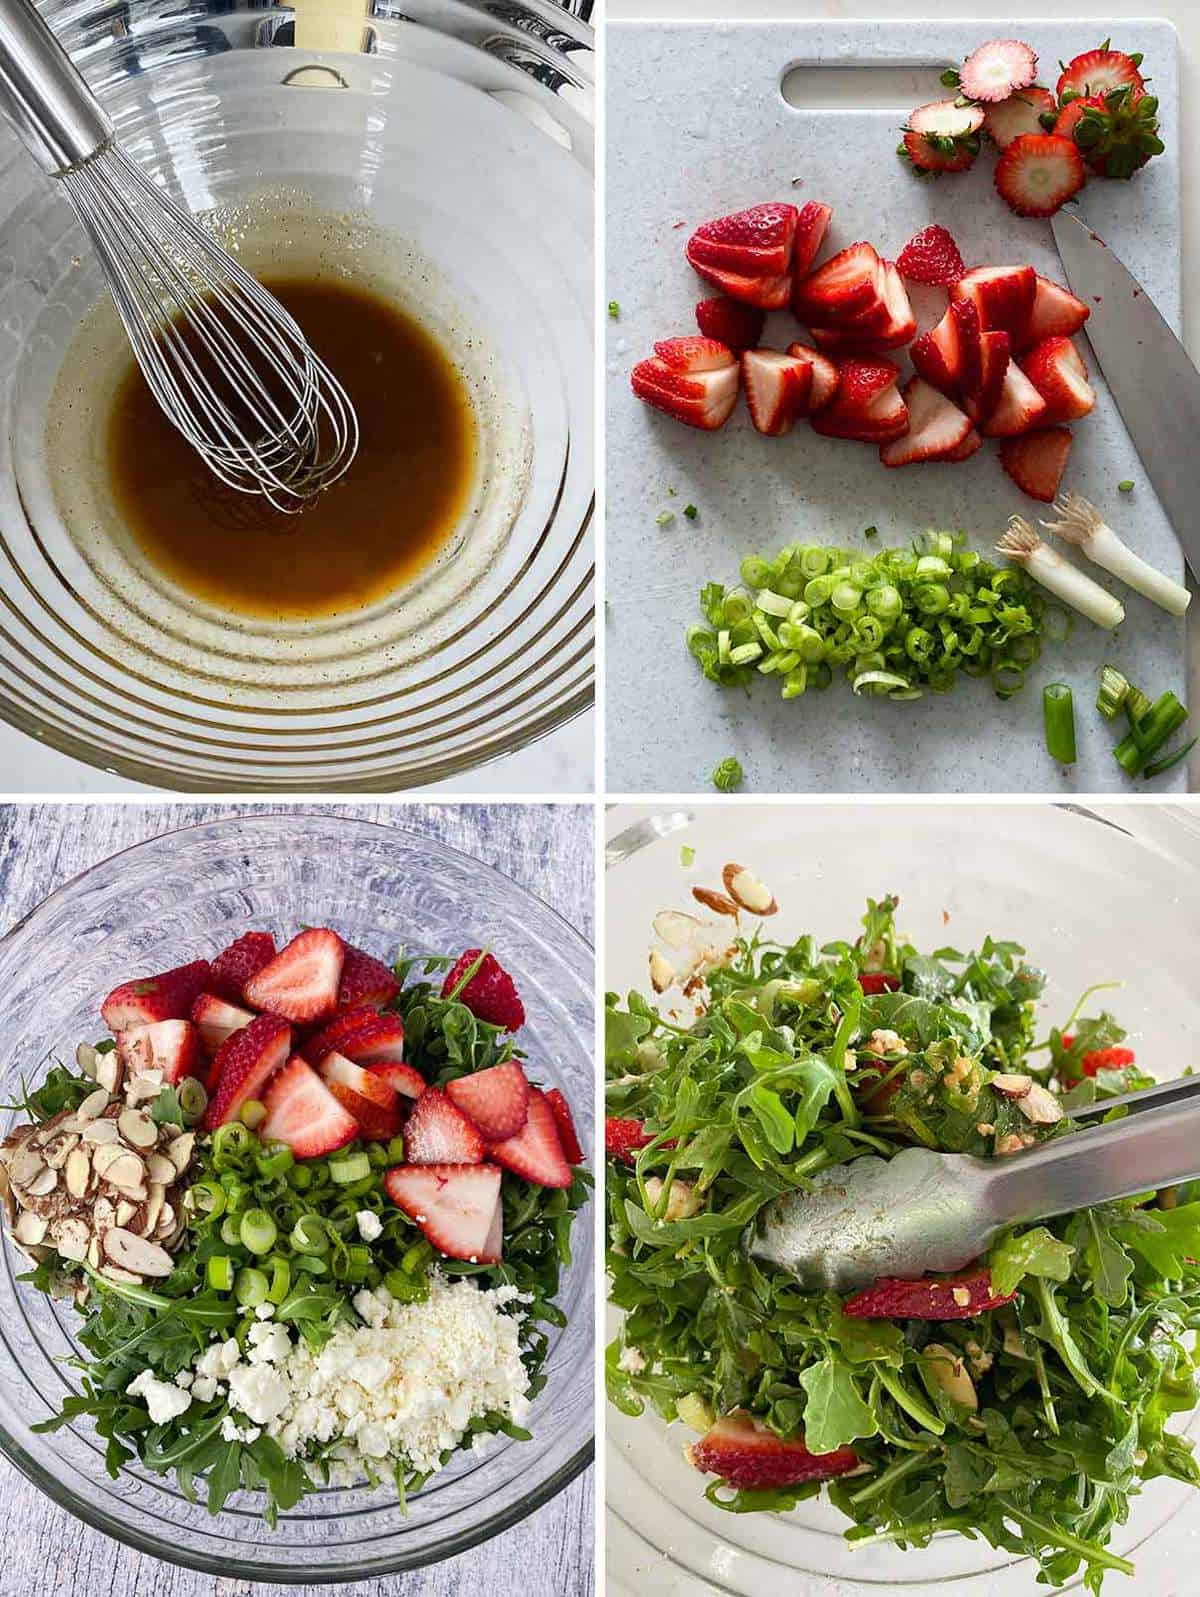 Process collage showing how to mix balsamic vinaigrette and a strawberry arugula salad with feta and almonds in a large bowl.